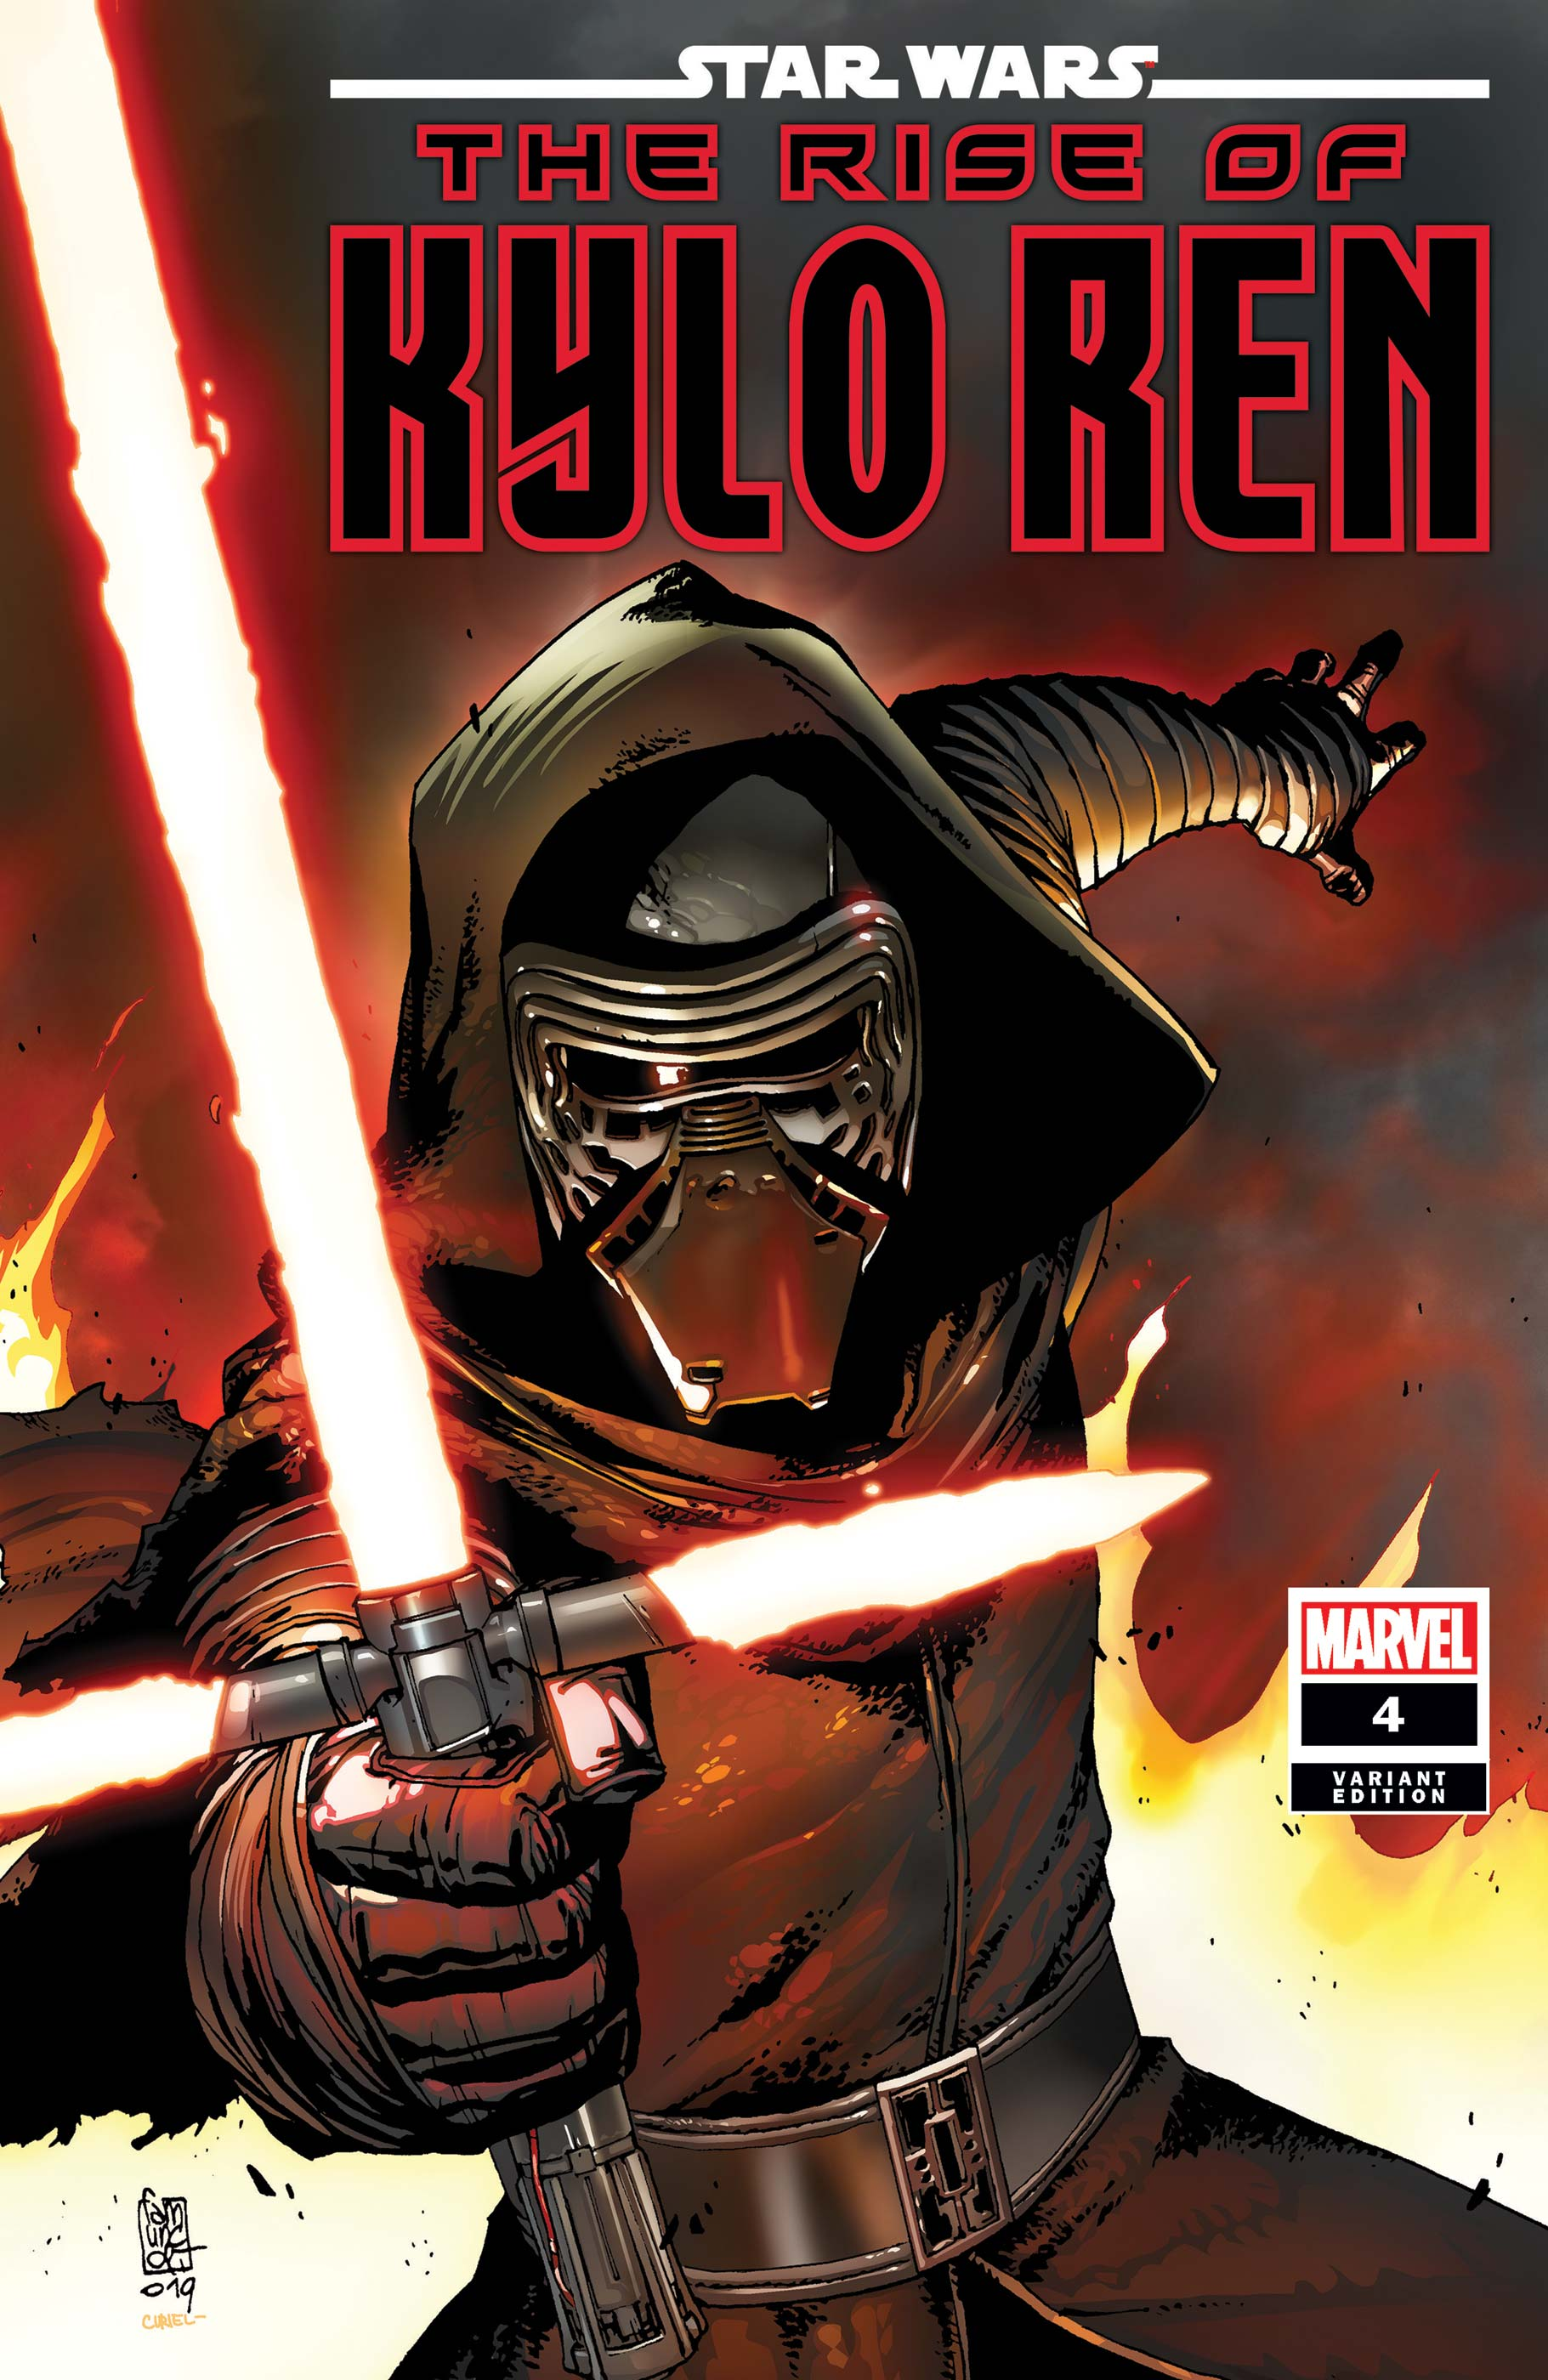 Star Wars: The Rise of Kylo Ren (2019) #4 (Variant)